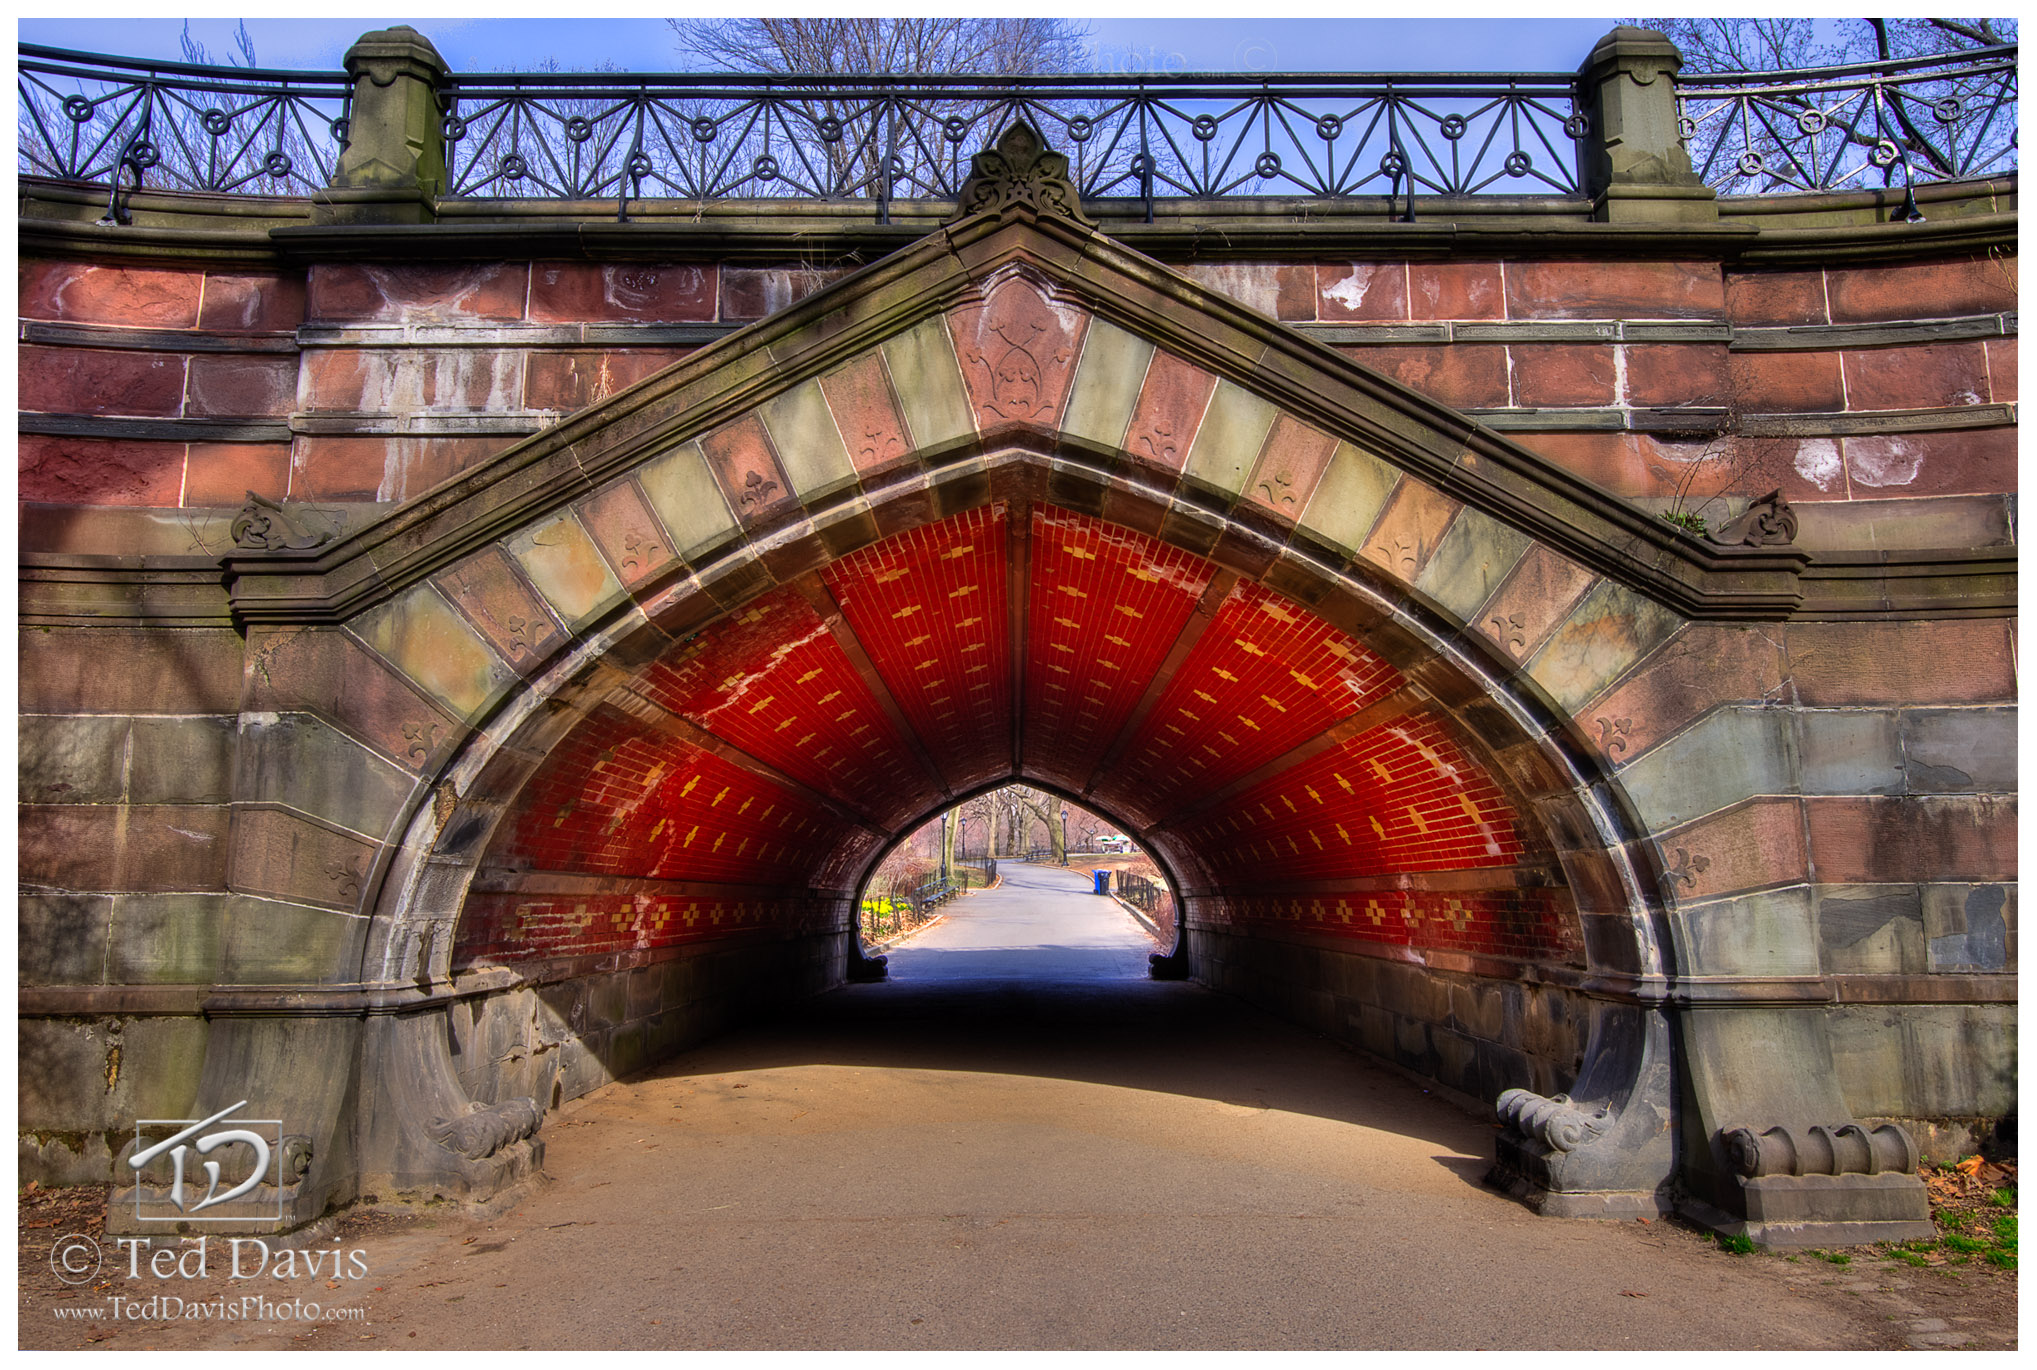 New York, Central Park, boat pond, tile, archway, photo